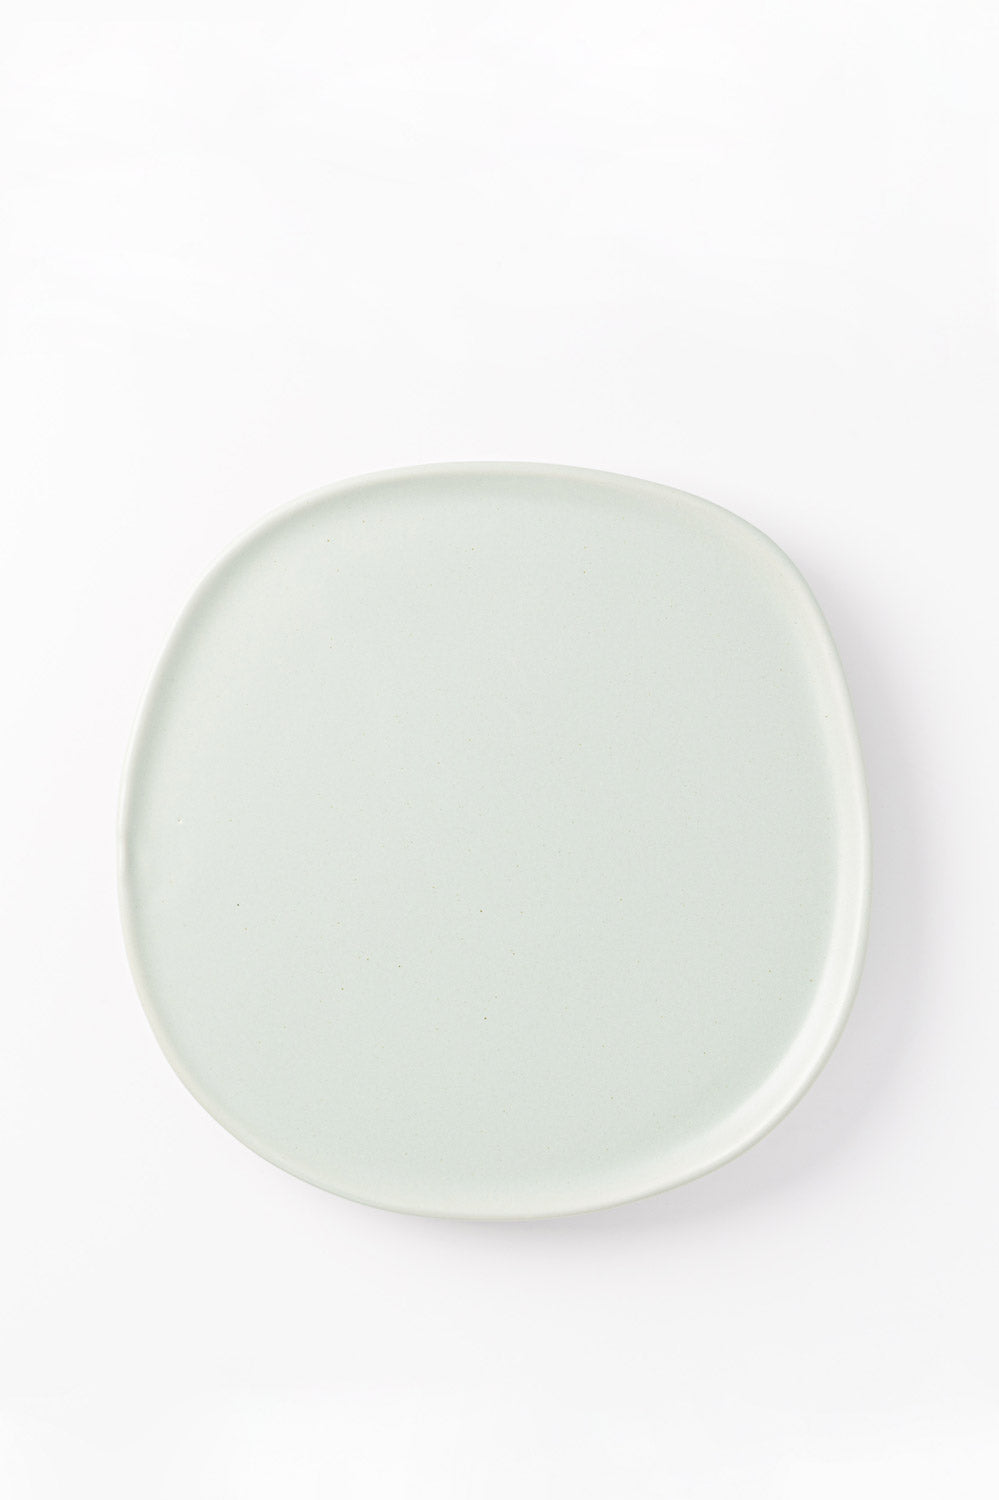 Ripple Dinner Plate in Celadon